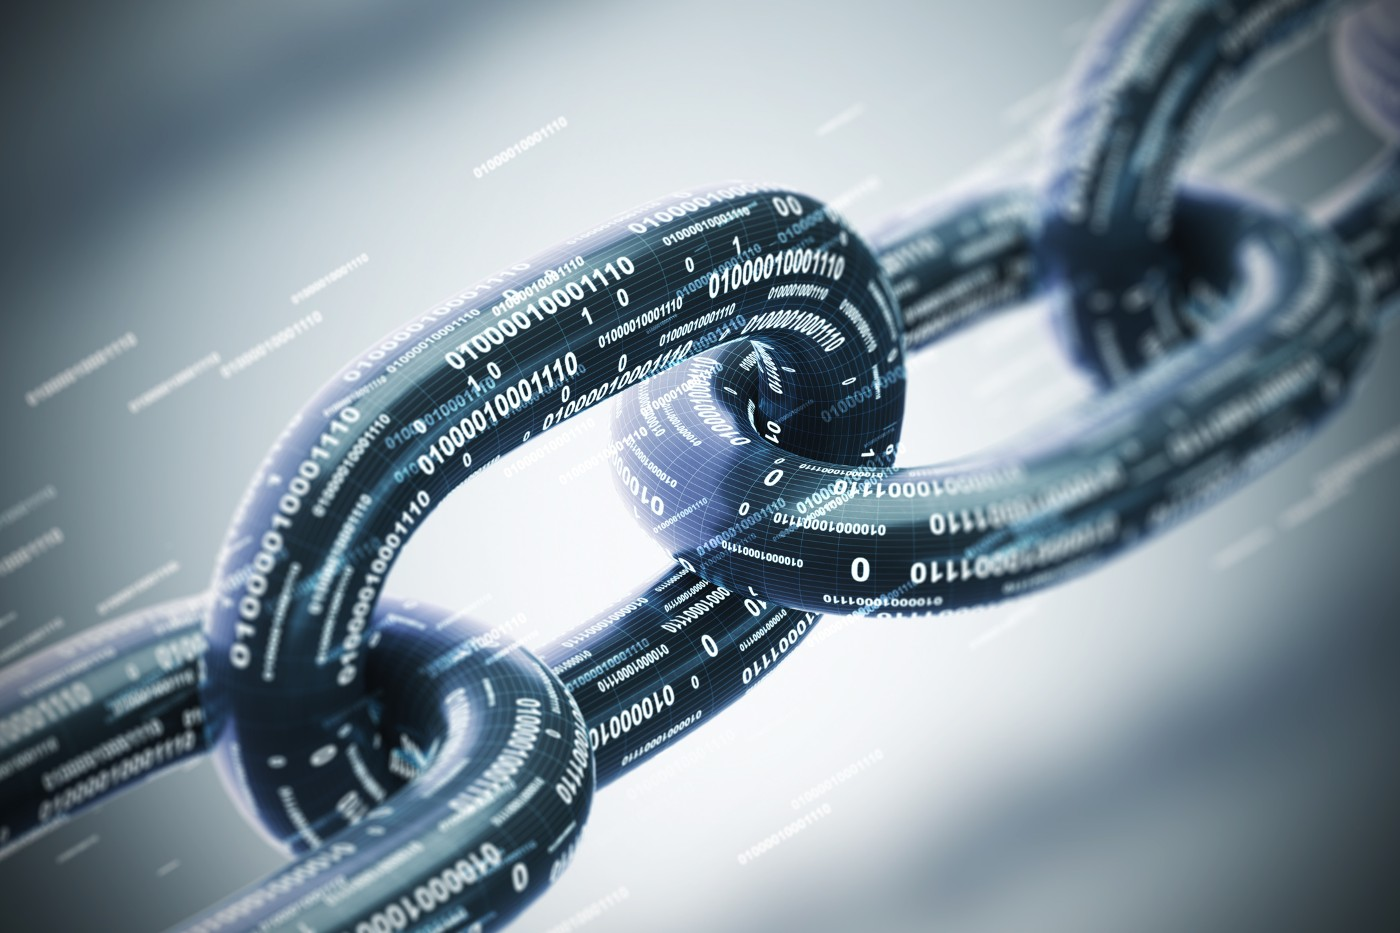 https://tickertapecdn.tdameritrade.com/assets/images/pages/md/Links in a chain: Cryptocurrency types and risks for investors